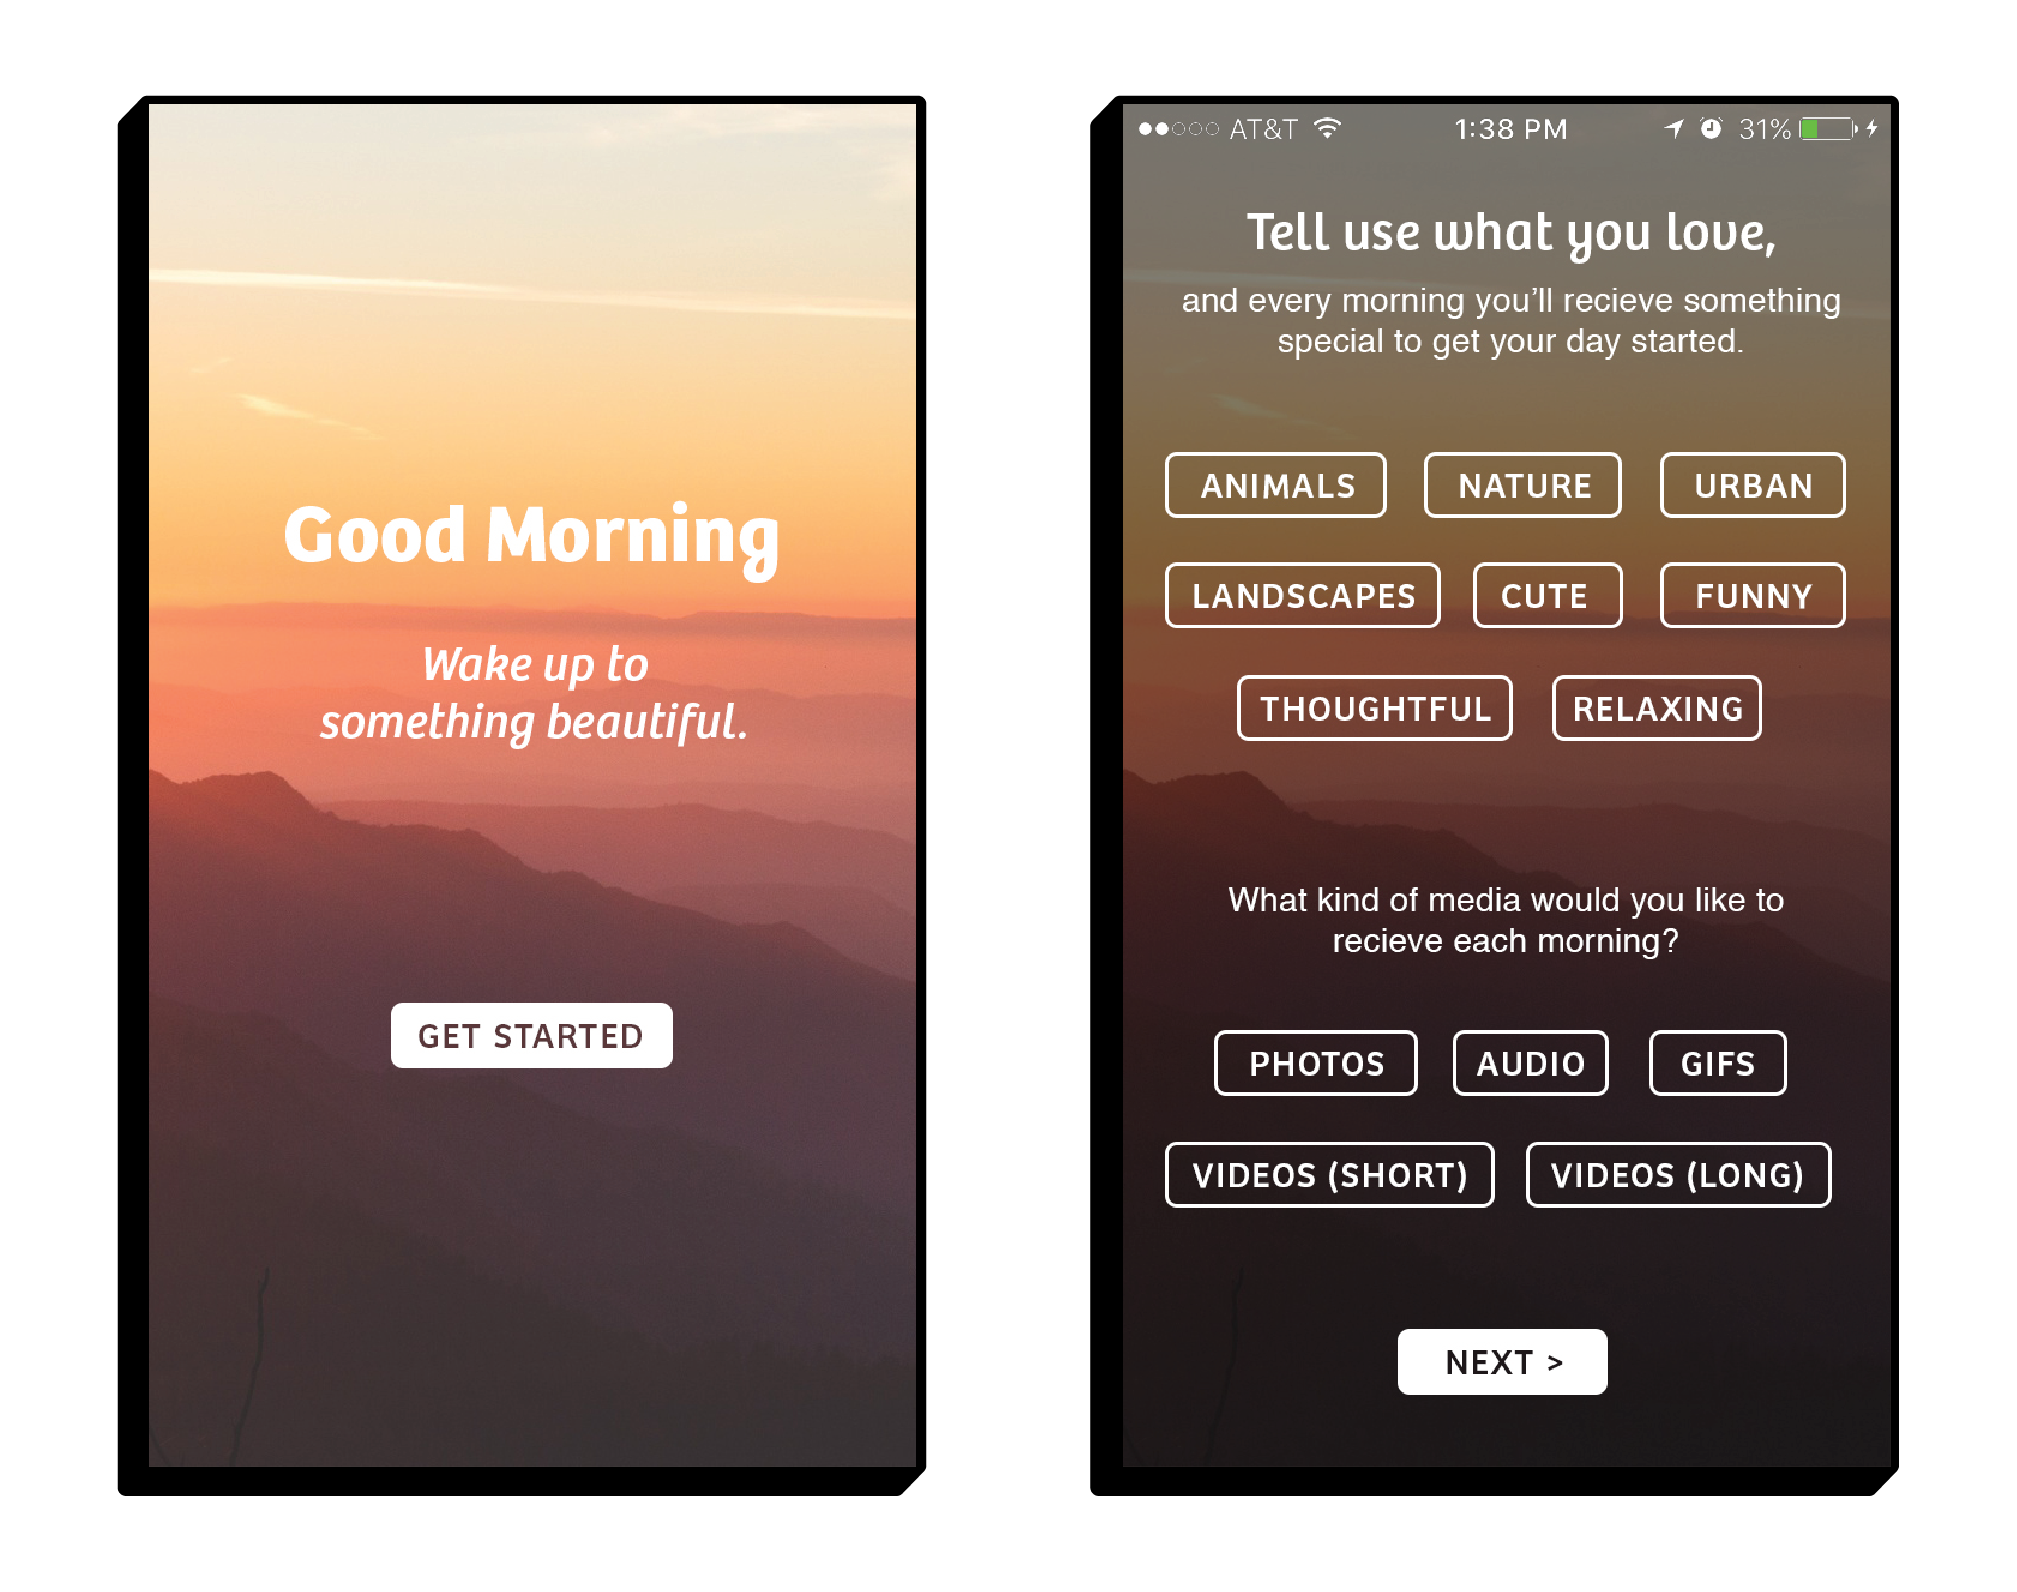 Good Morning welcome and setup screen